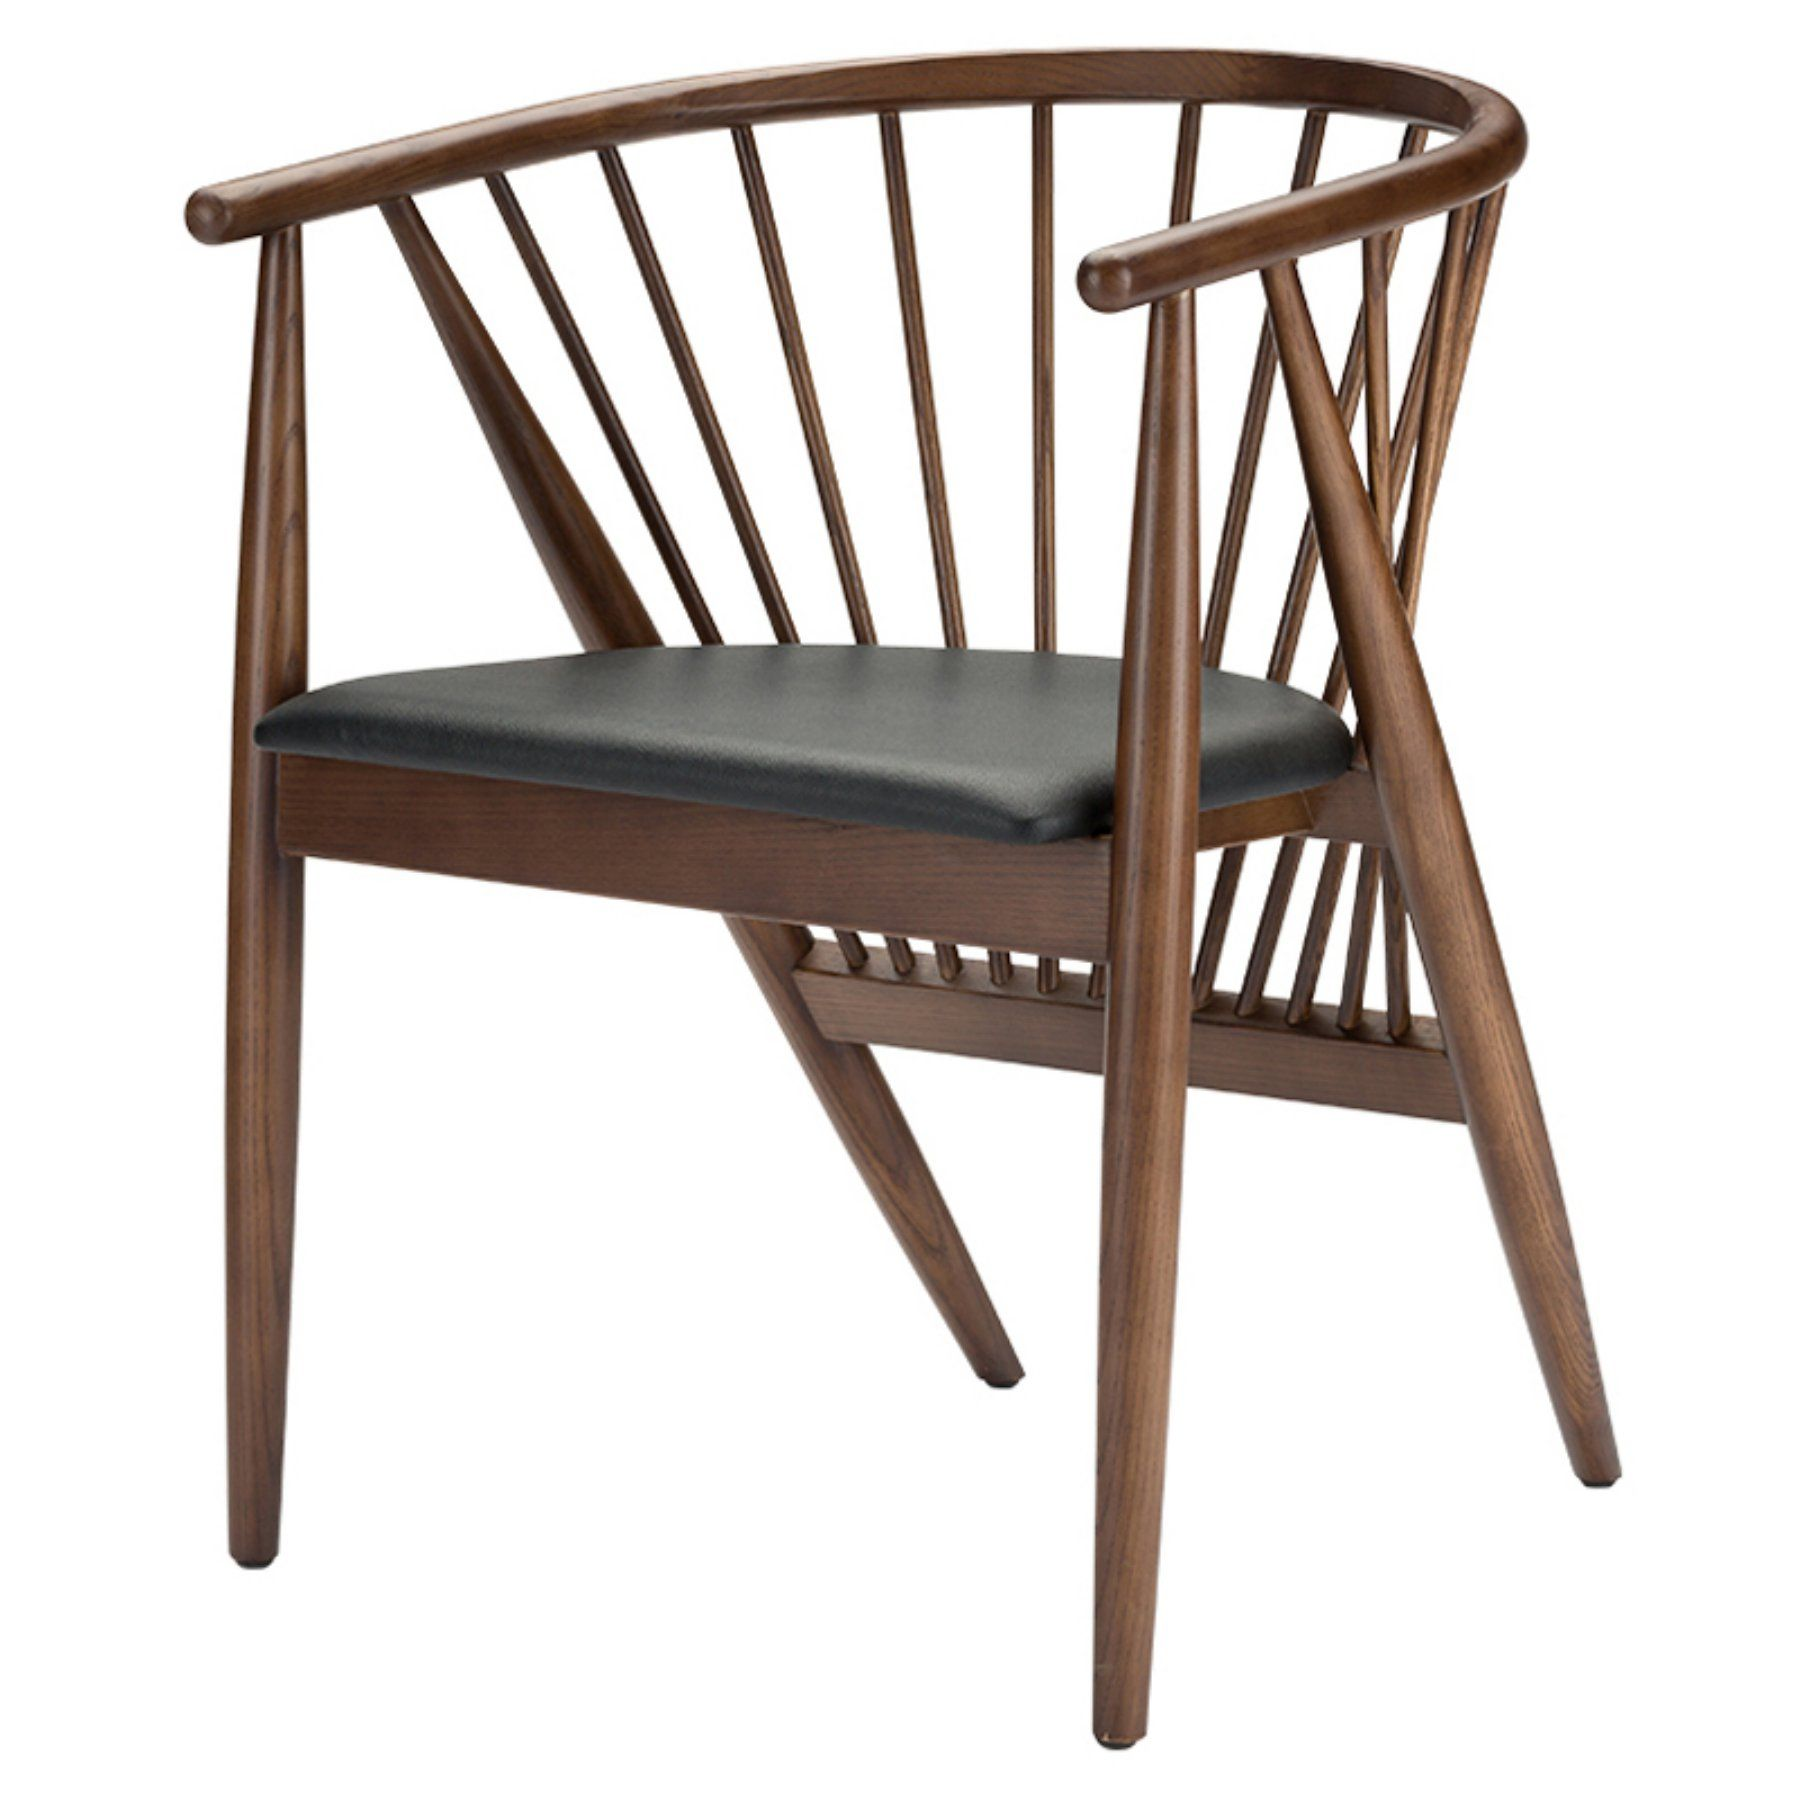 Nuevo Danson Dining Chair Hgyu103 Dining Chairs Dining Chair